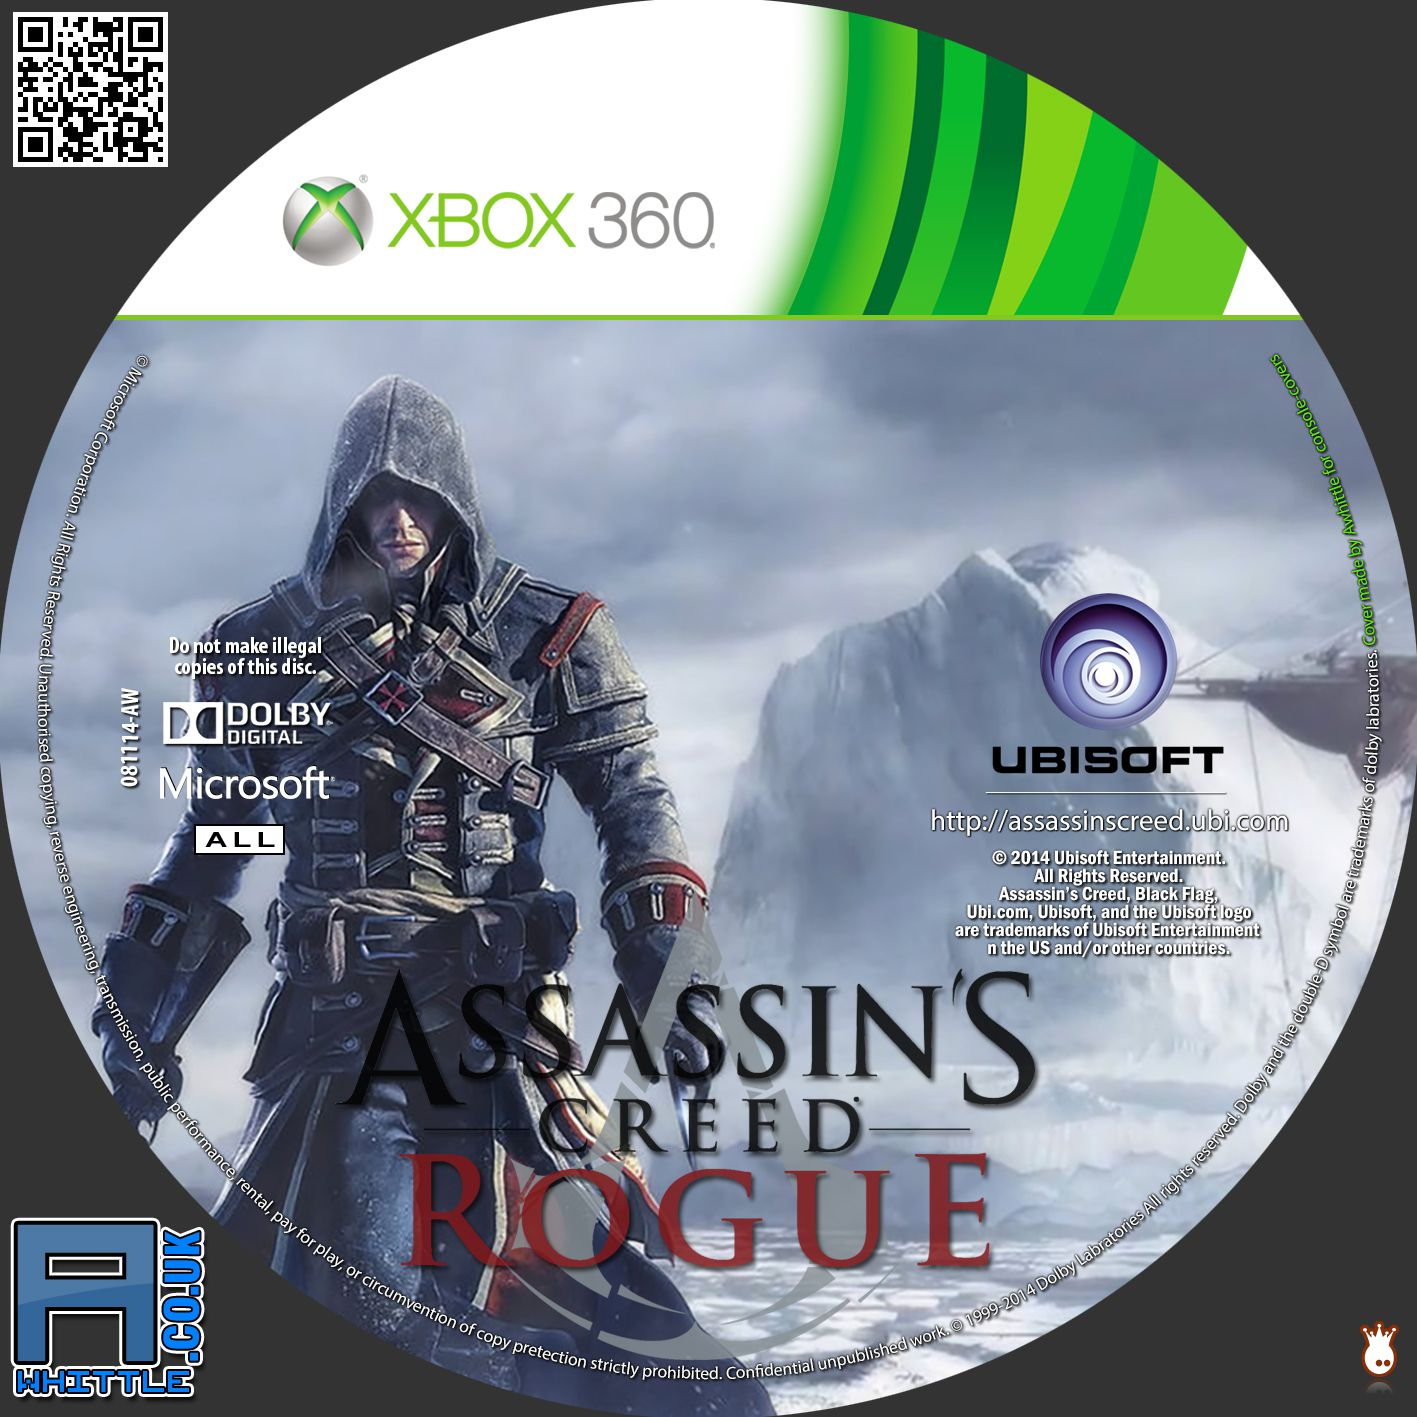 Label Assassins Creed Rogue Xbox 360